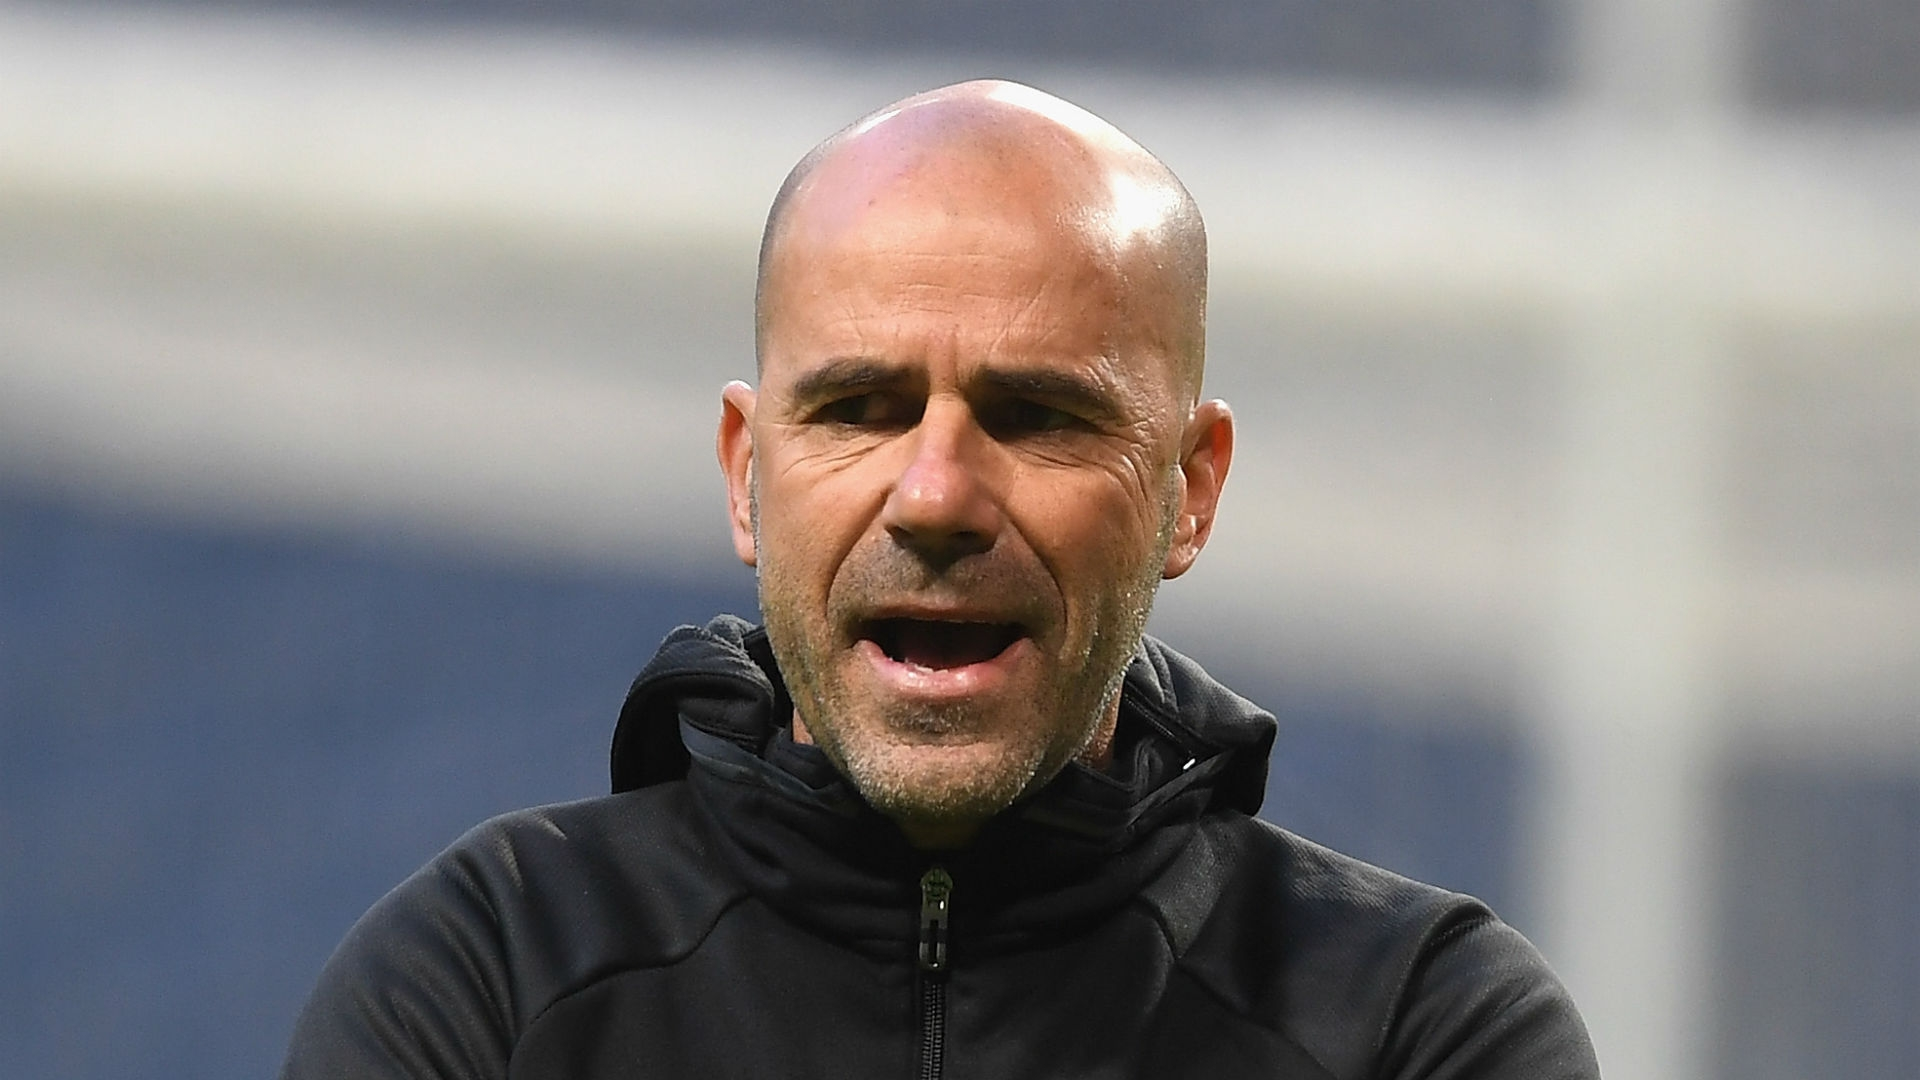 Bosz's successful season at Ajax Amsterdam, which brought them all the way to the final of the Europa League, was enough to convince the Dortmund board to employ him as the side's new manager.